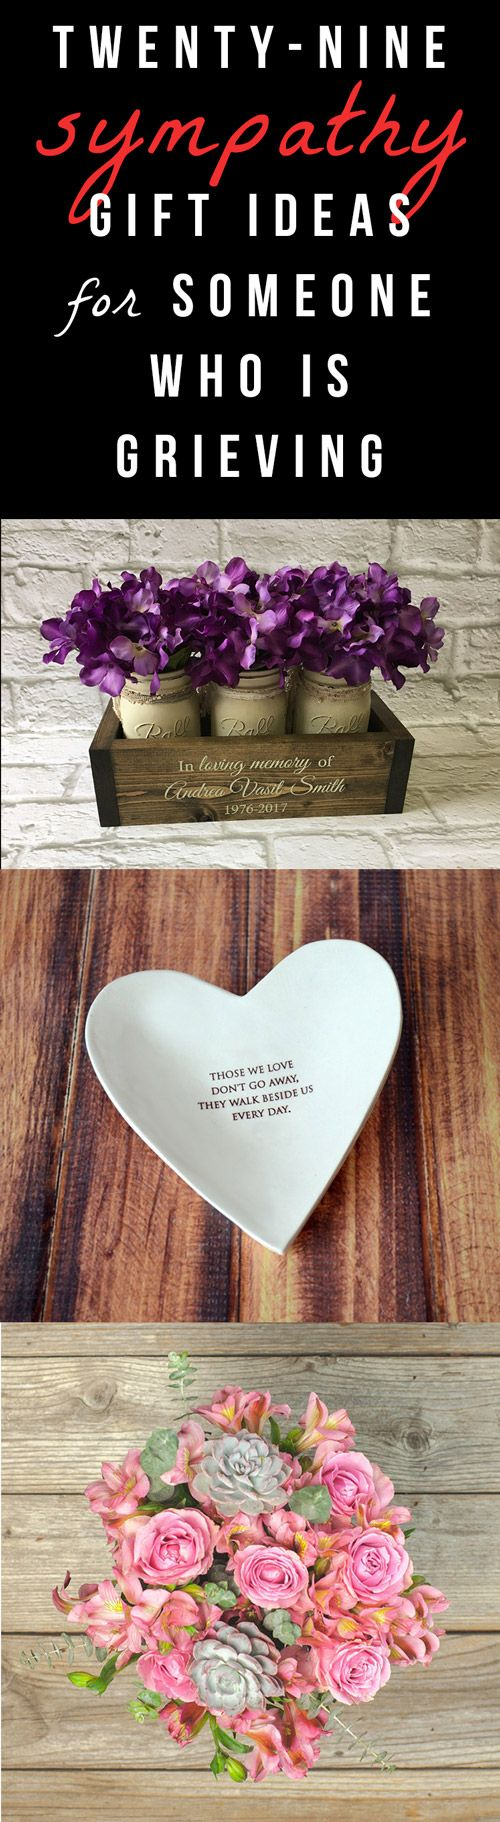 29 Sympathy Gifts For Someone Who Is Grieving Sympathy